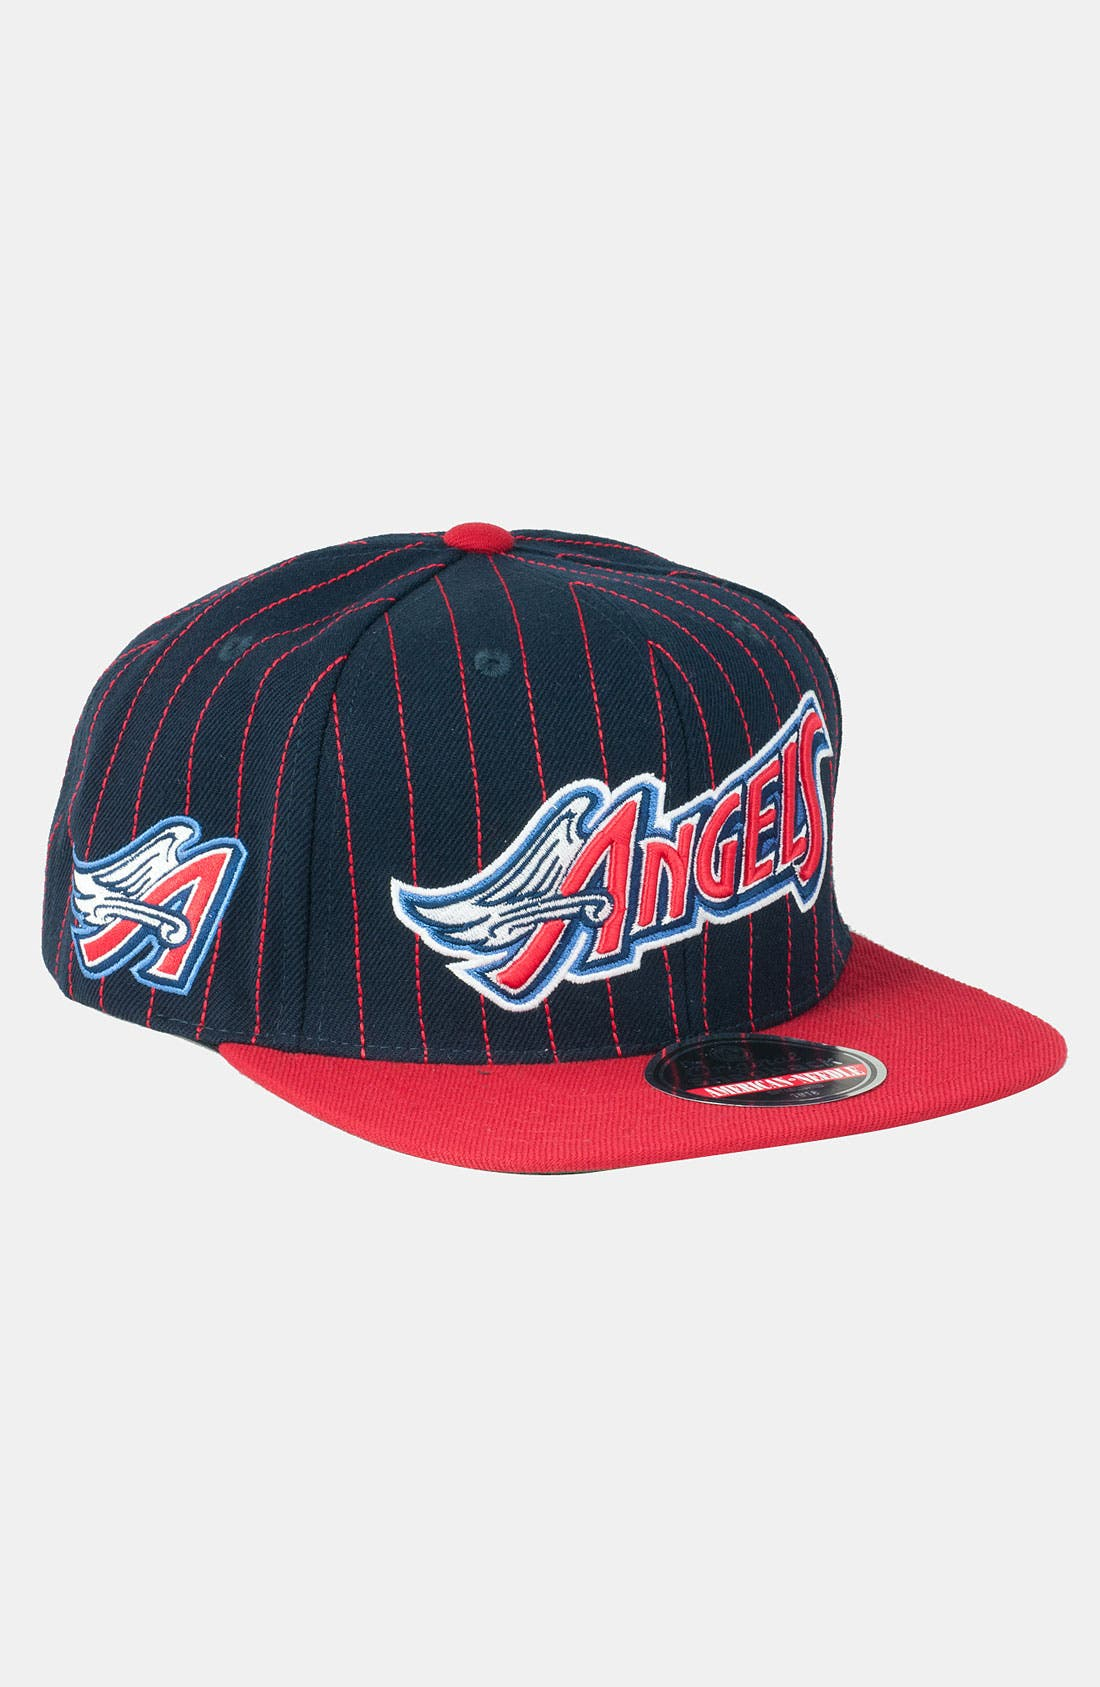 Main Image - American Needle 'Angels' Snapback Baseball Cap